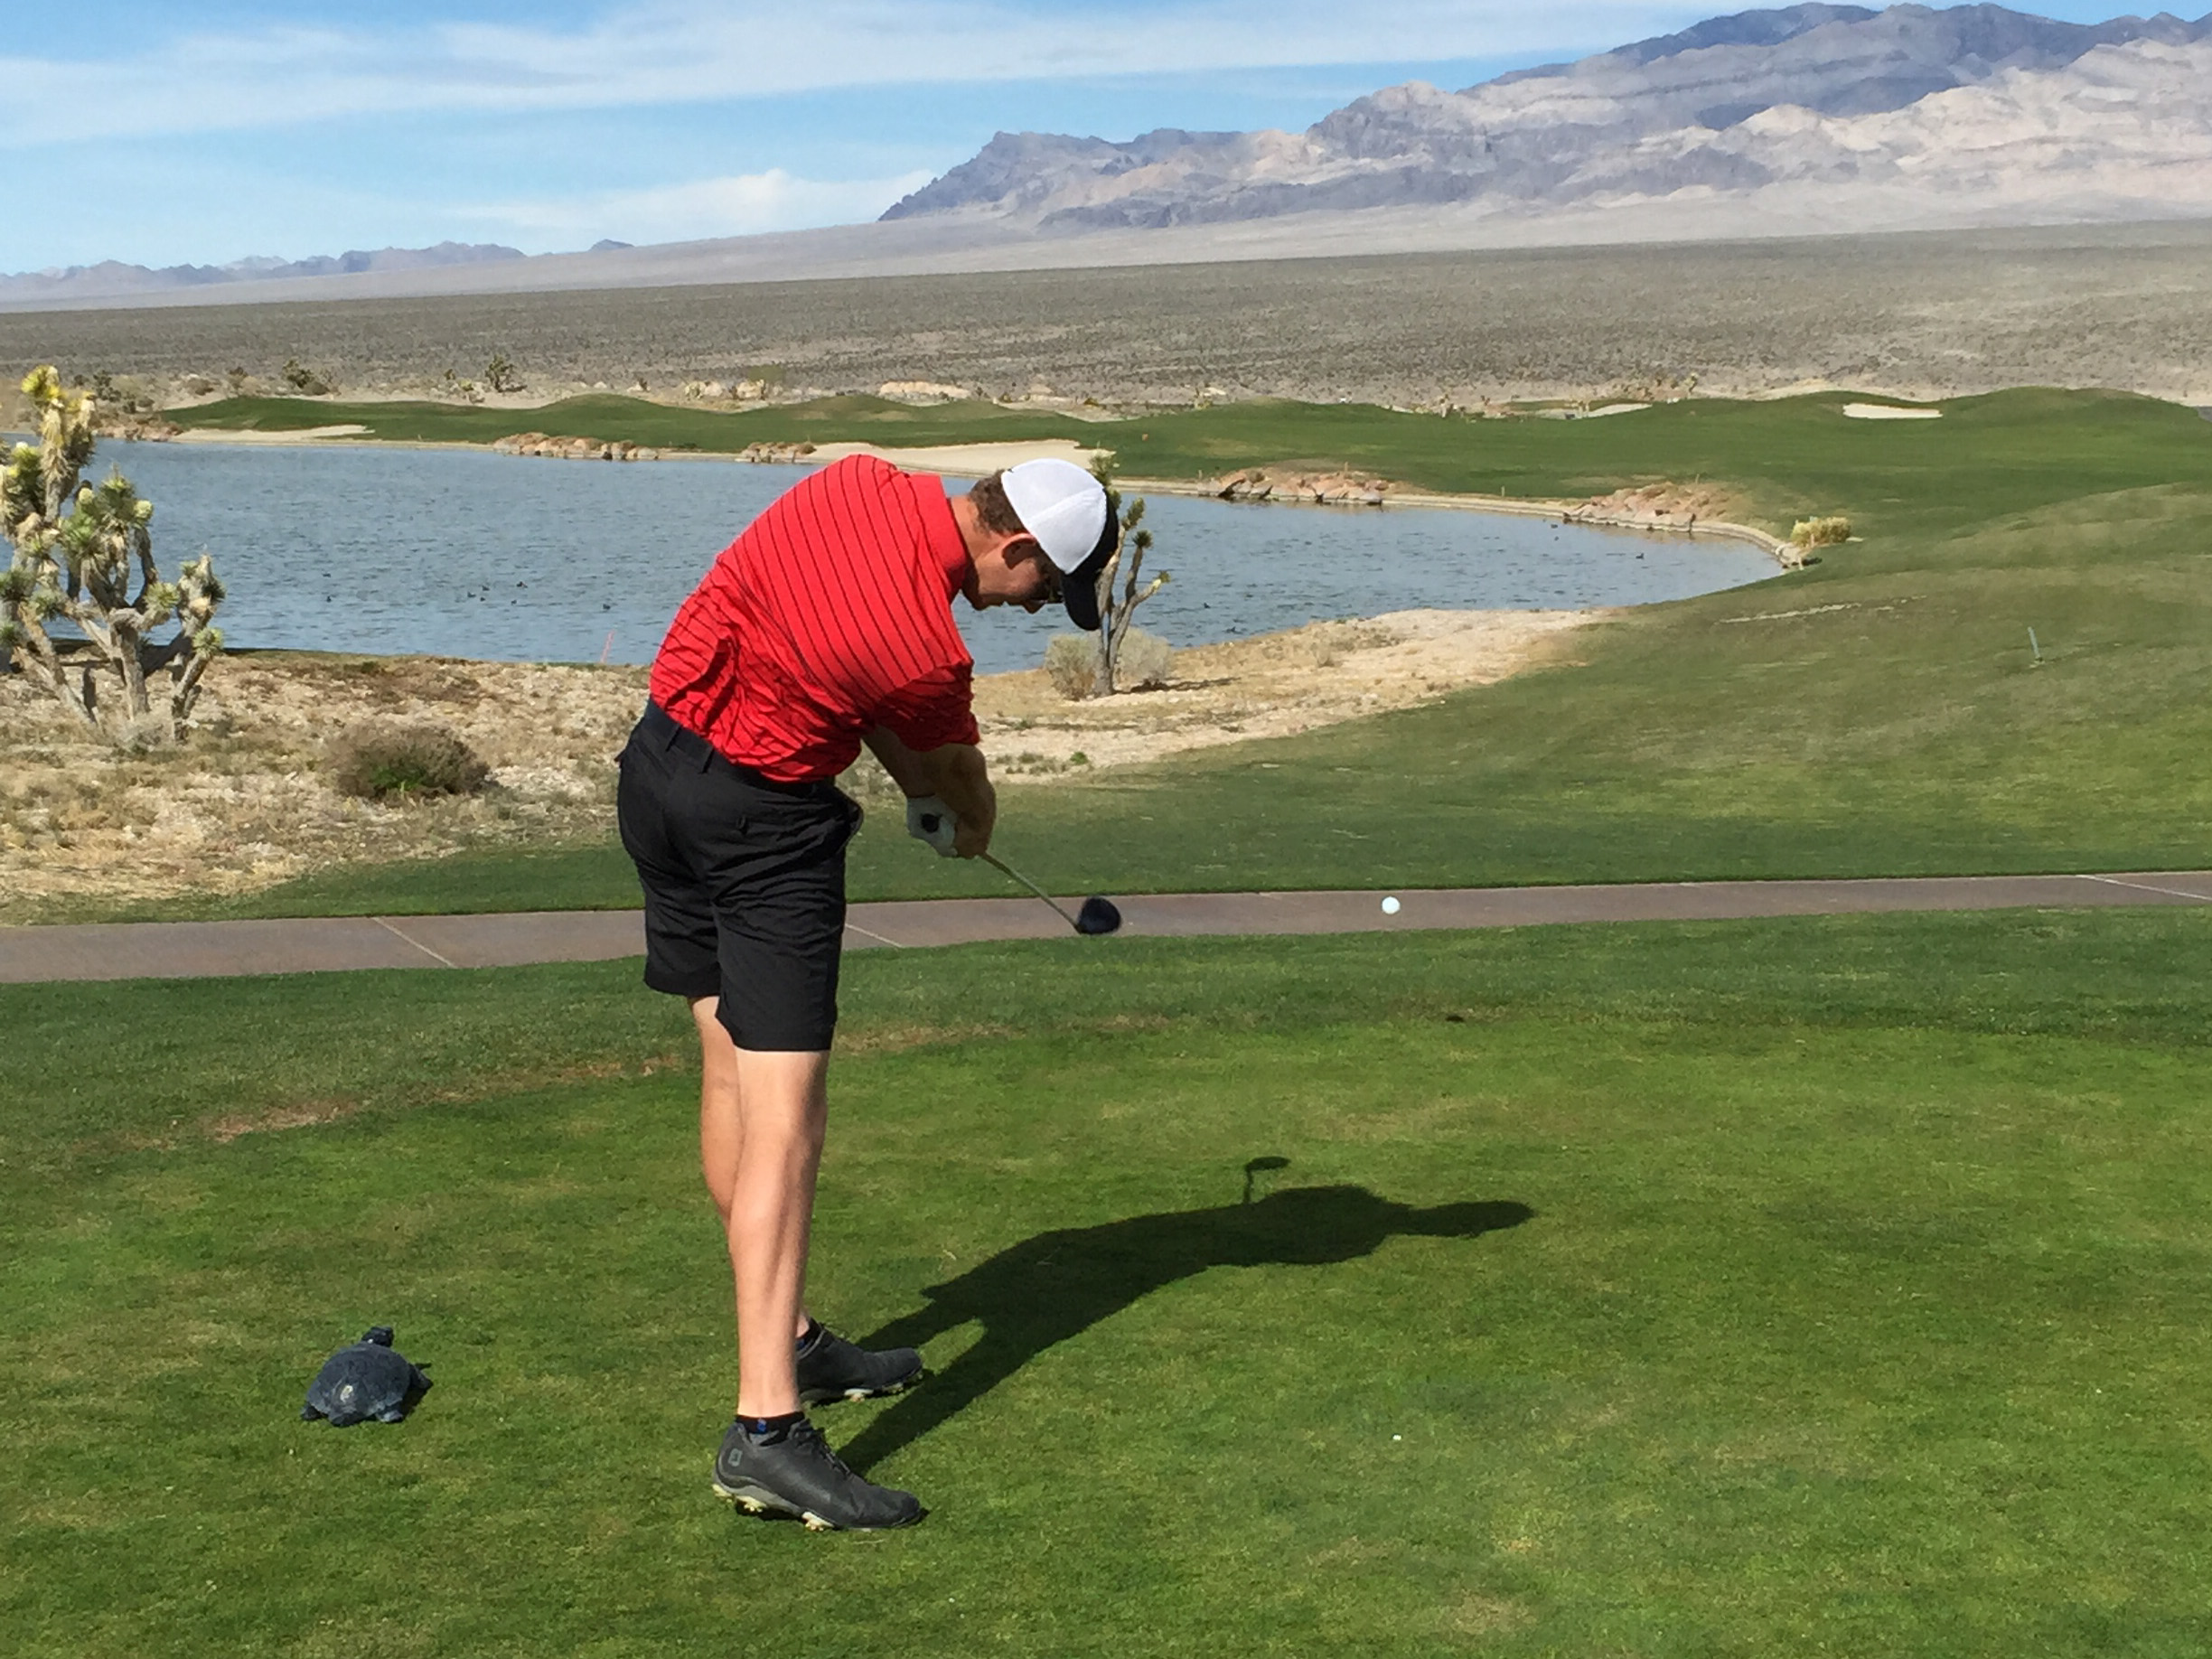 Zac Shaefer shoots 73, 73, 74 for a 12th place finish in the Las Vegas Desert Classic on Feb. 28-29. Photo by David Lynn.